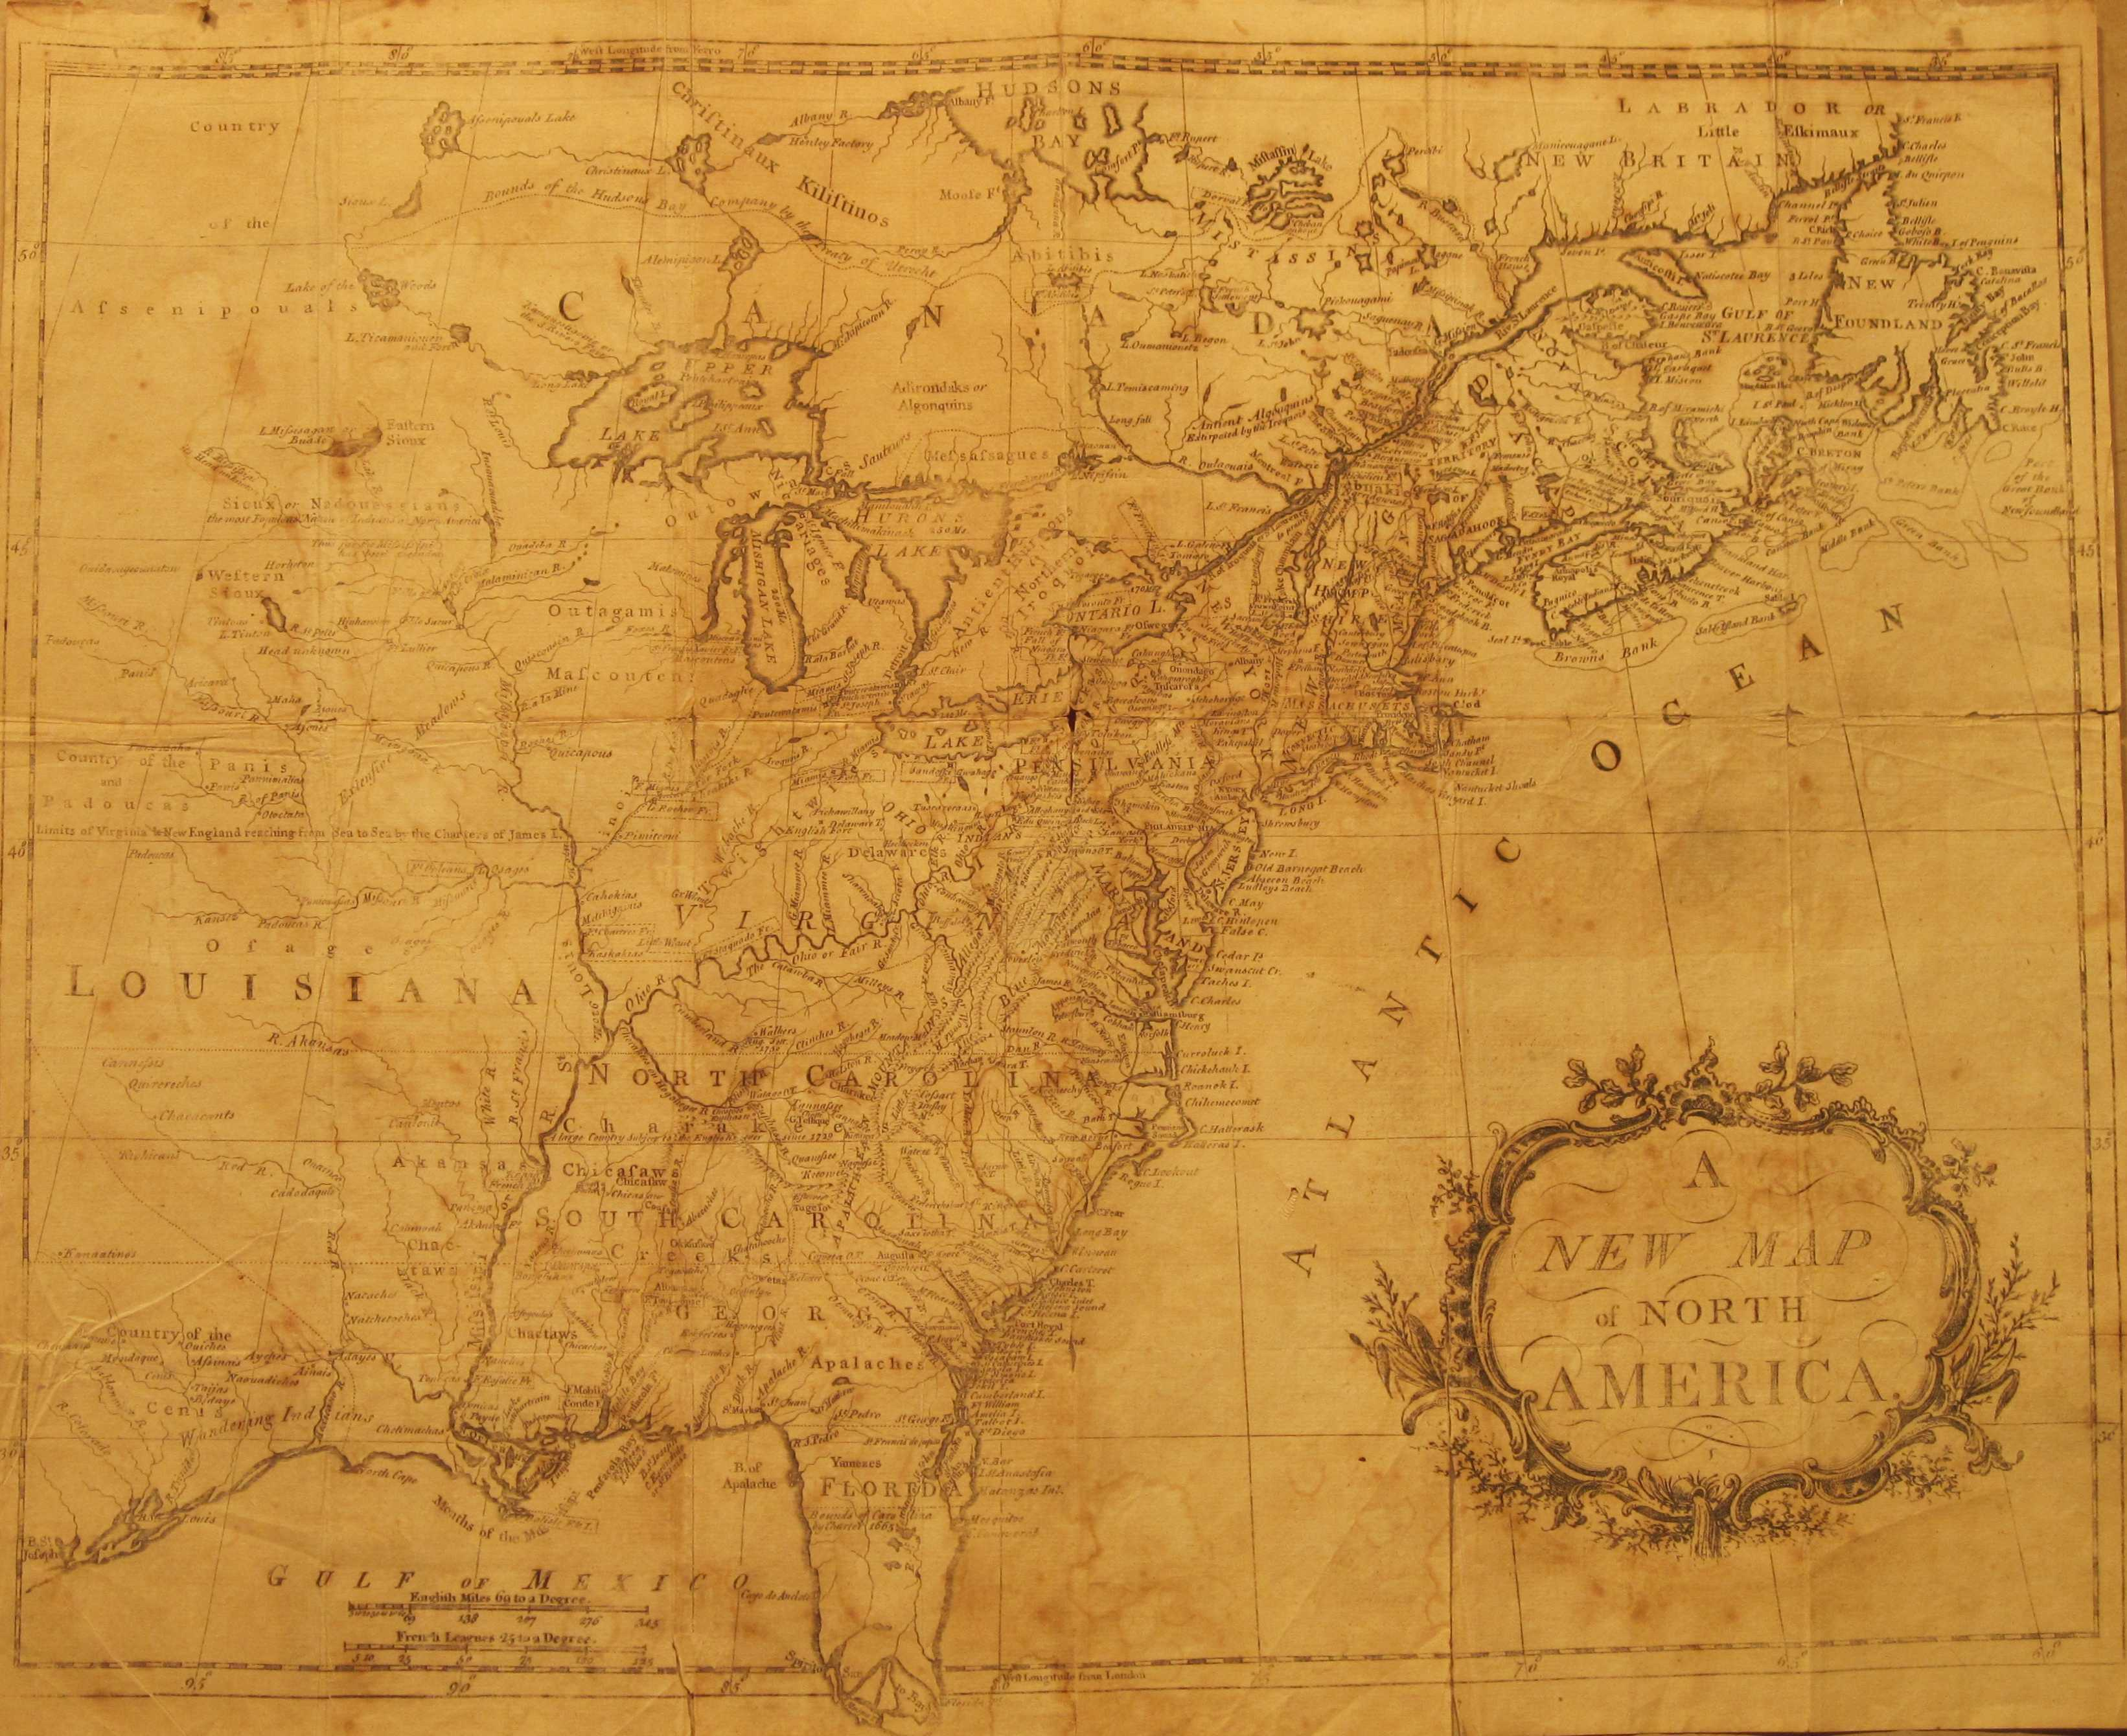 1779 7 A New Map Of North America A Large And Anonymous Map Of The Eastern United States From Newfoundland To Florida Which Extends Beyond The Neat Line